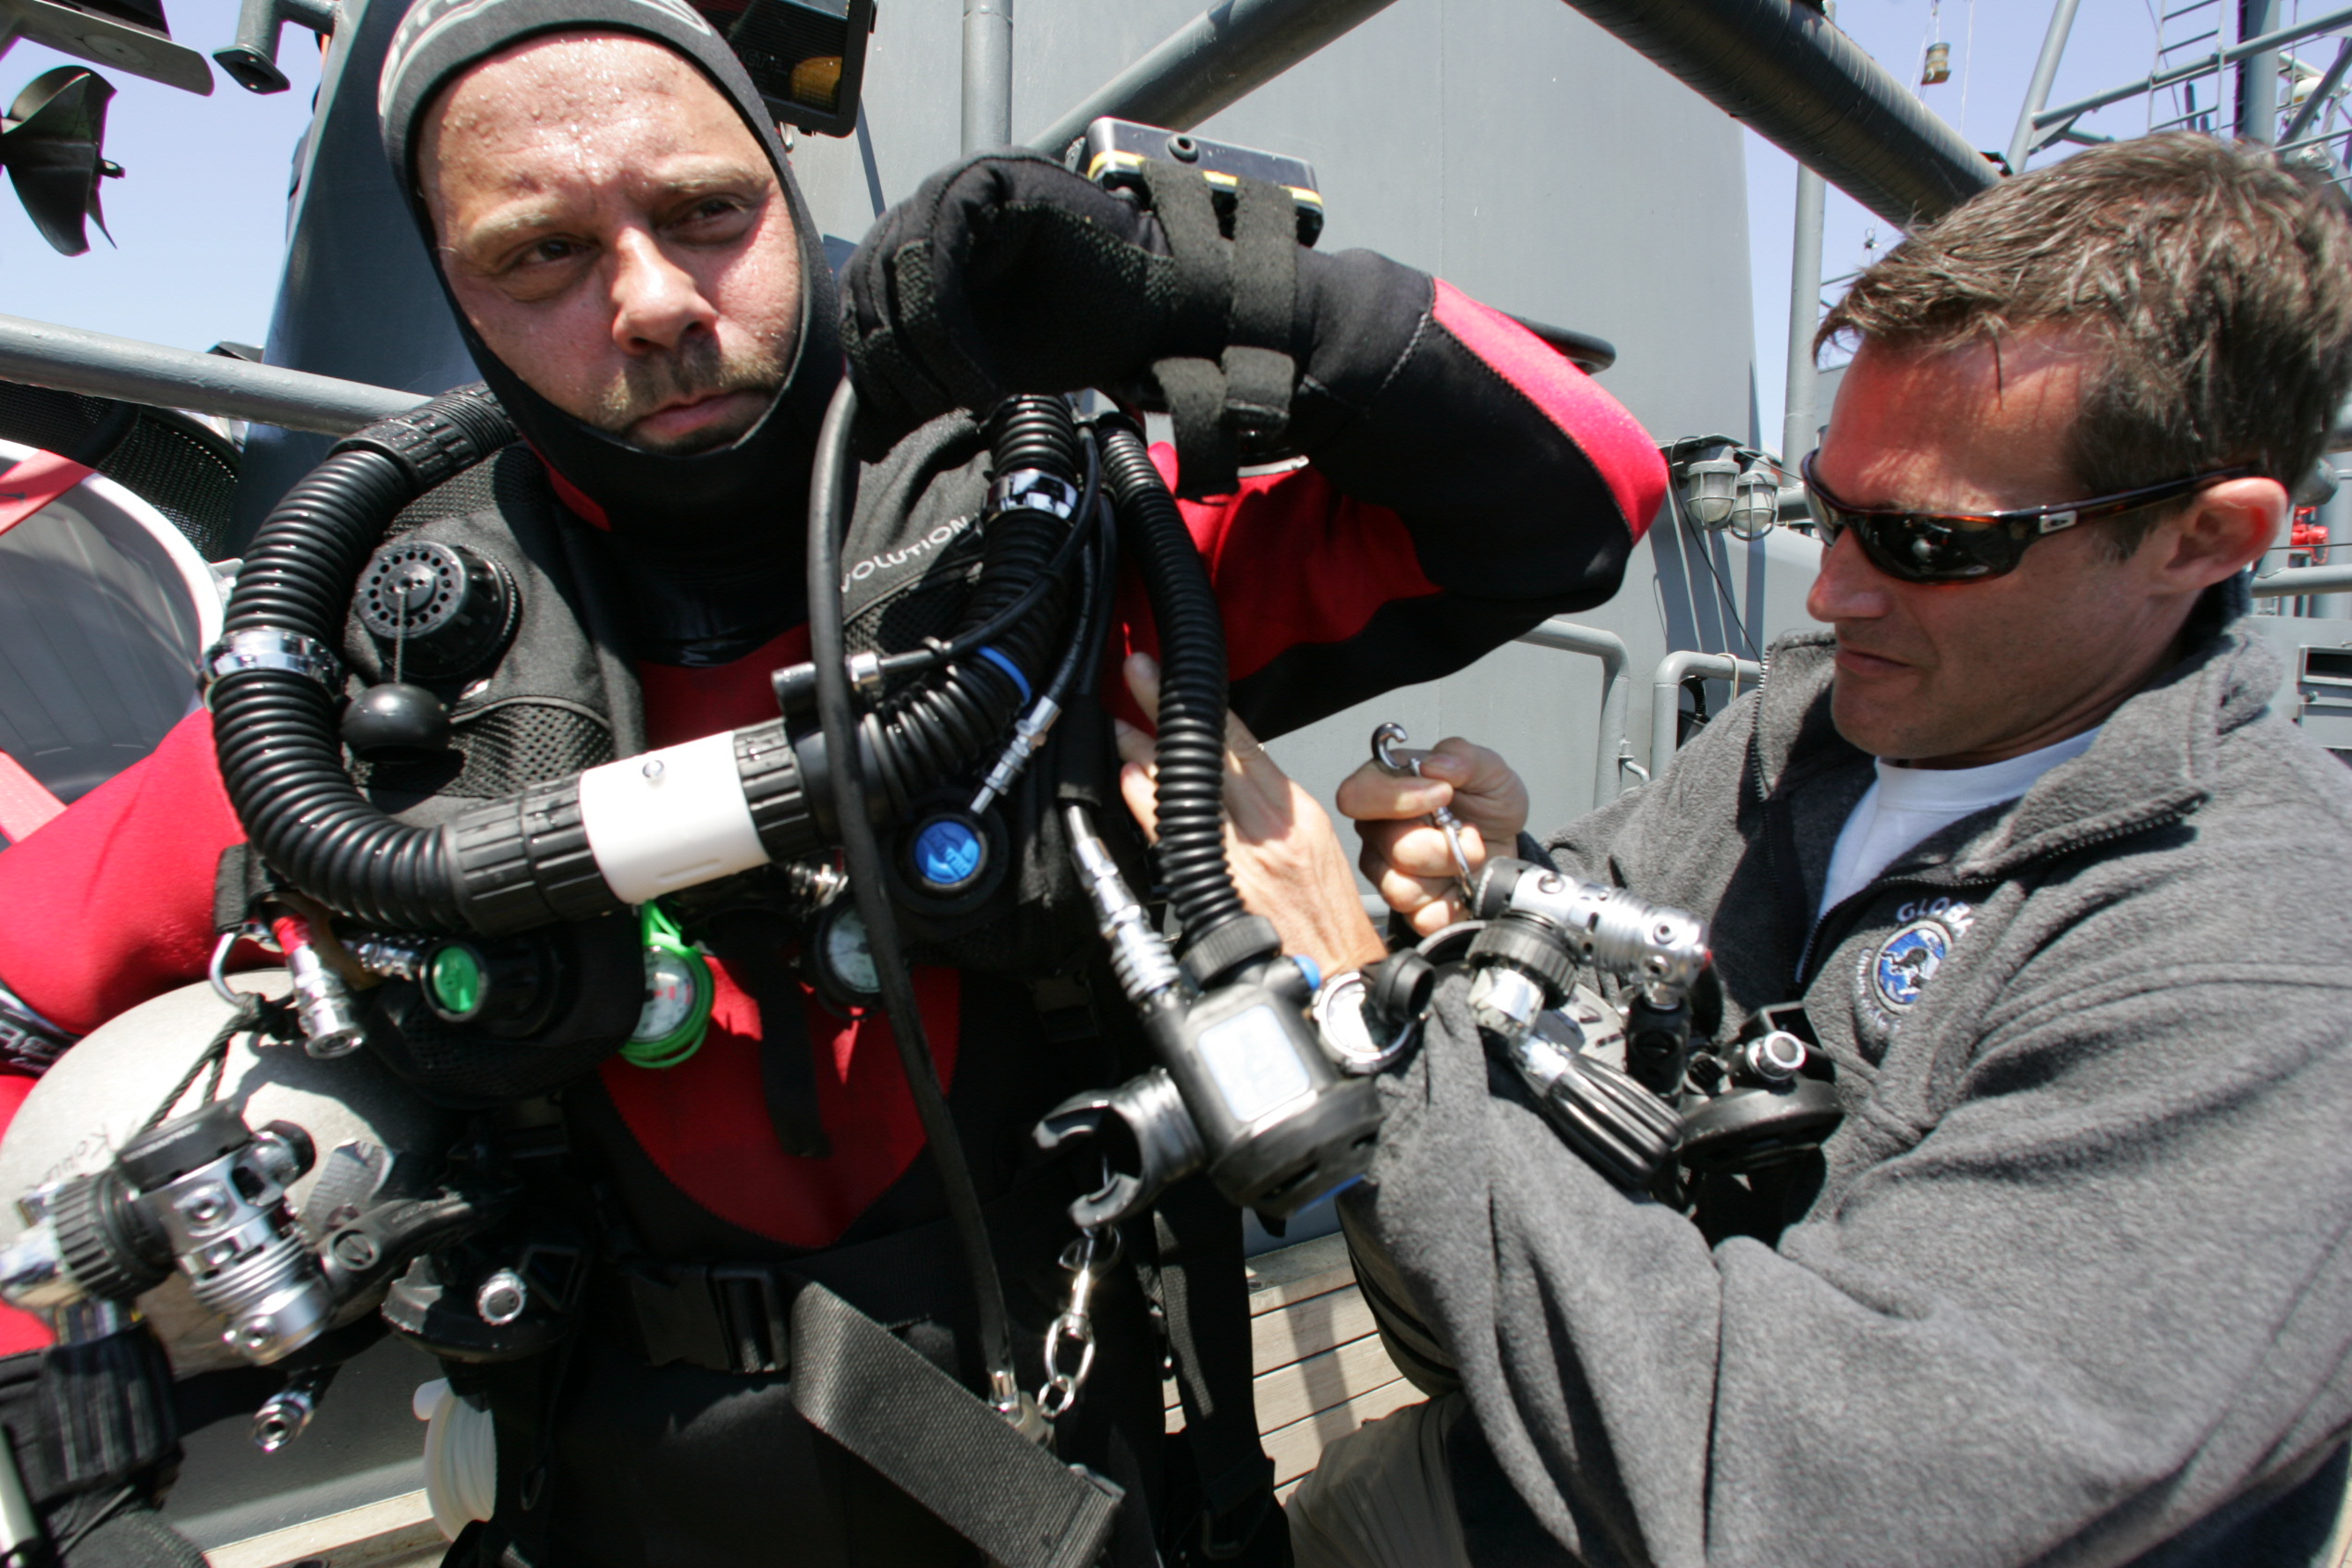 2009 004 All bottom divers are assited in kitting up to reduce thermal stress, and for another set of eyes to go over all connections and fittings. Here Jarrod Jablonski helps me kitt up.